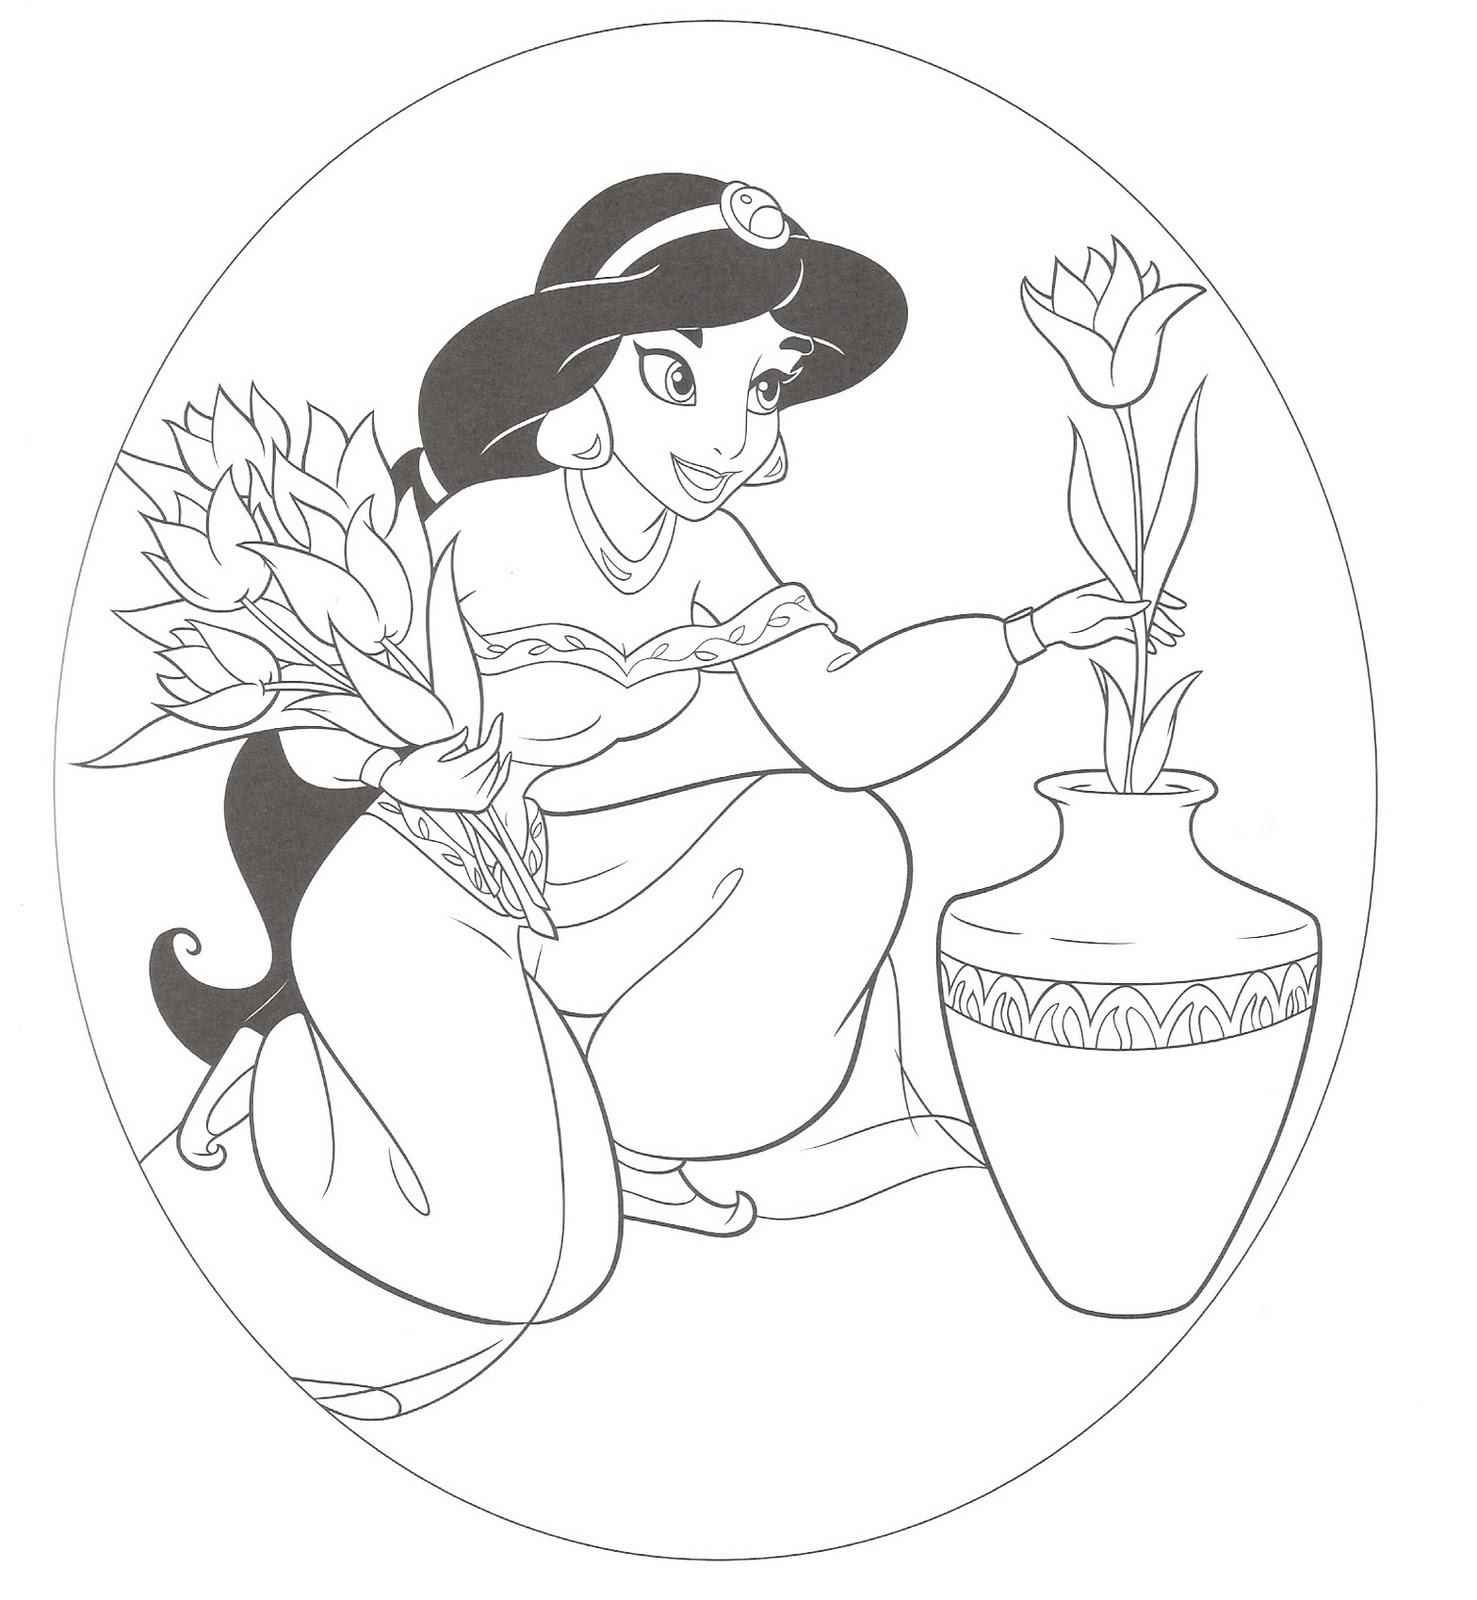 Disney Princess Coloring Pages For Kids Free Princess Coloring Pages Free Coloring Sheets